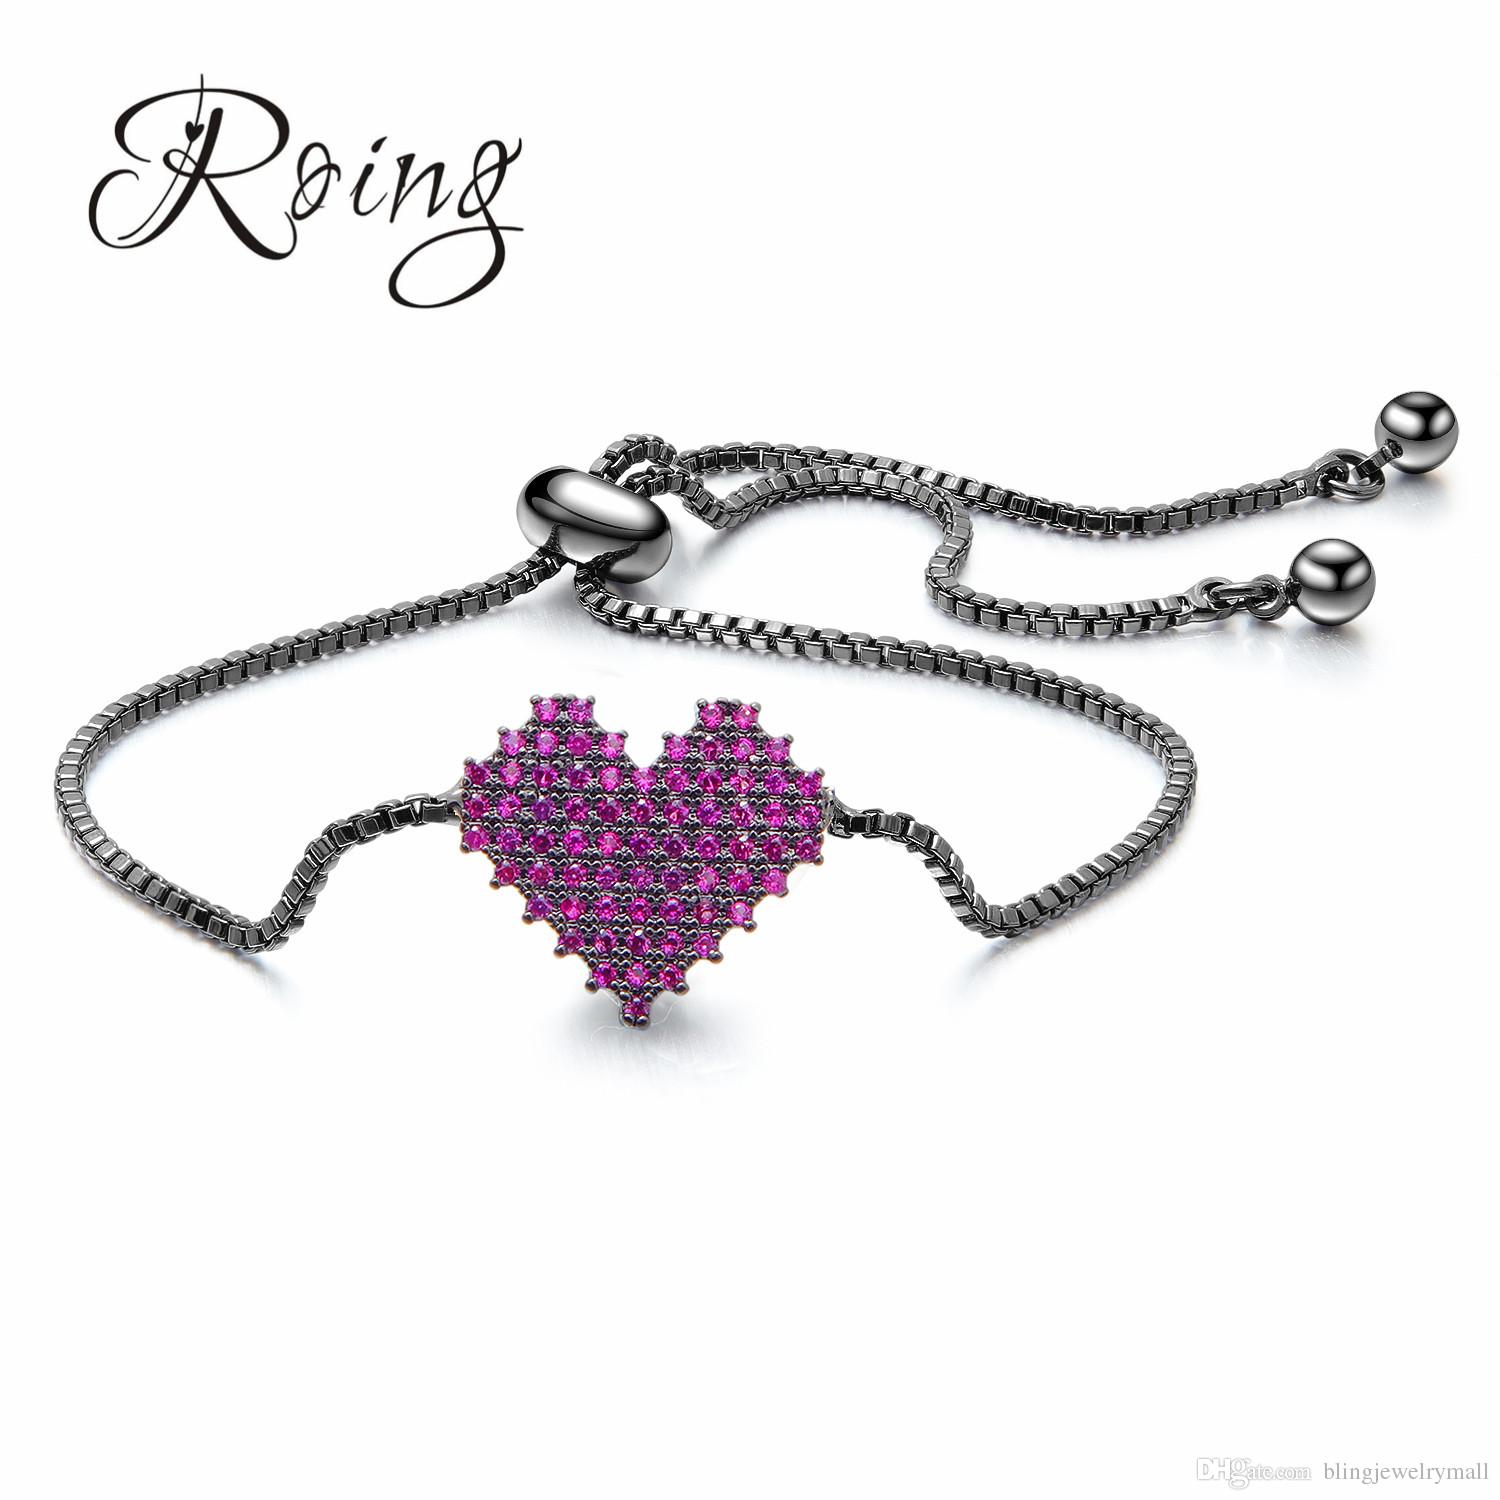 Sparkling Heart Cubic Zirconia Crystal Micro Pave Adjustable Chain Bracelets Rose Gold Silver Color For Women Jewelry Gift RO528